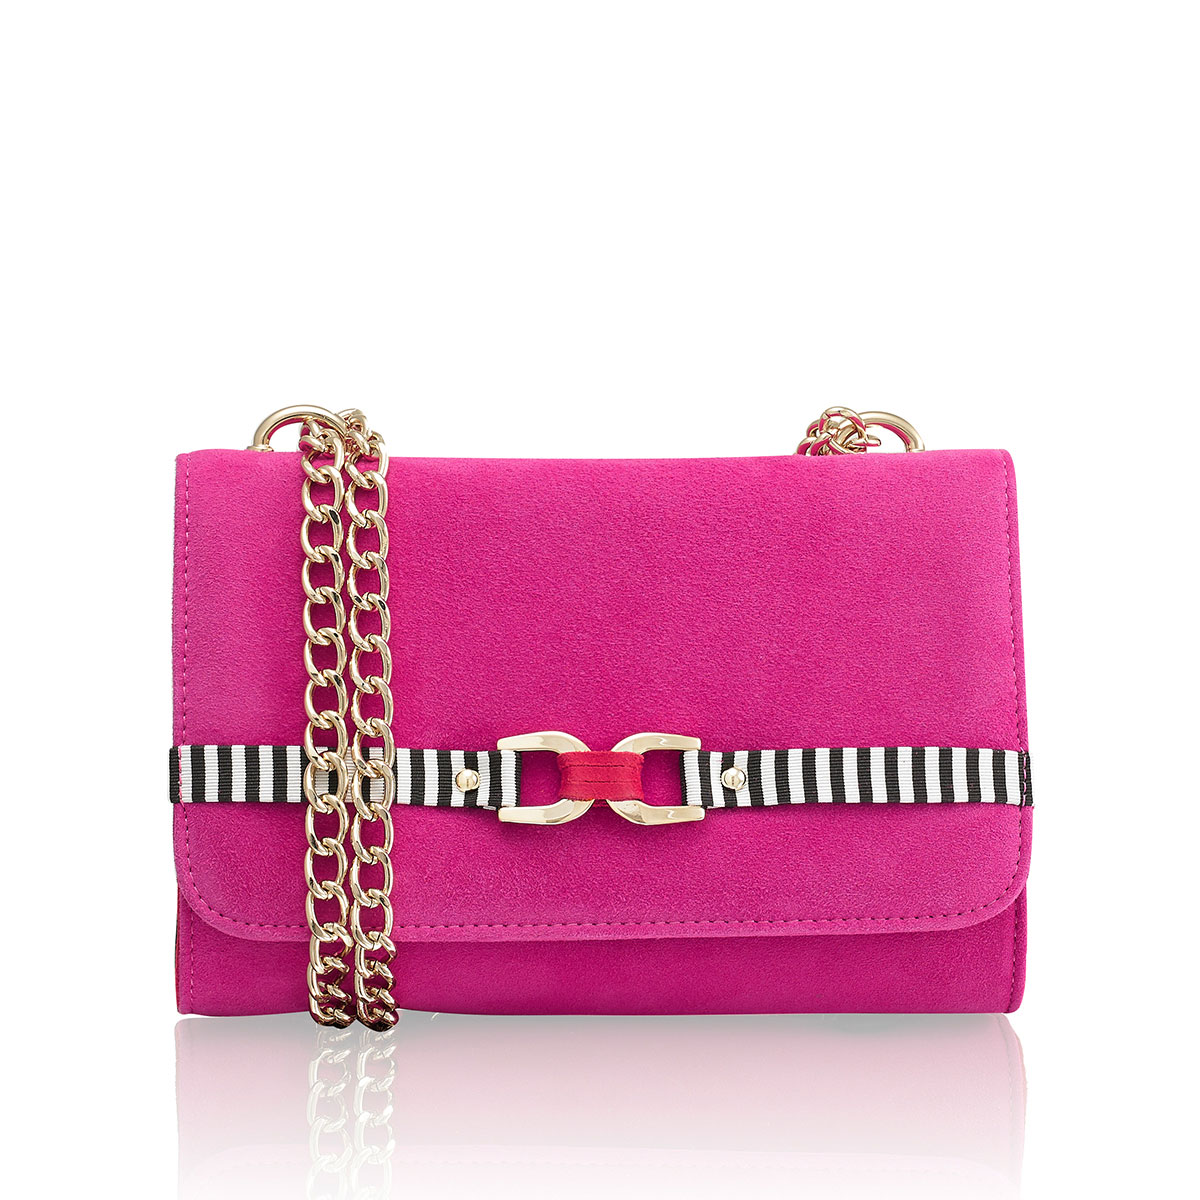 Russell And Bromley LINK UP Chain Handle Shoulder Bag